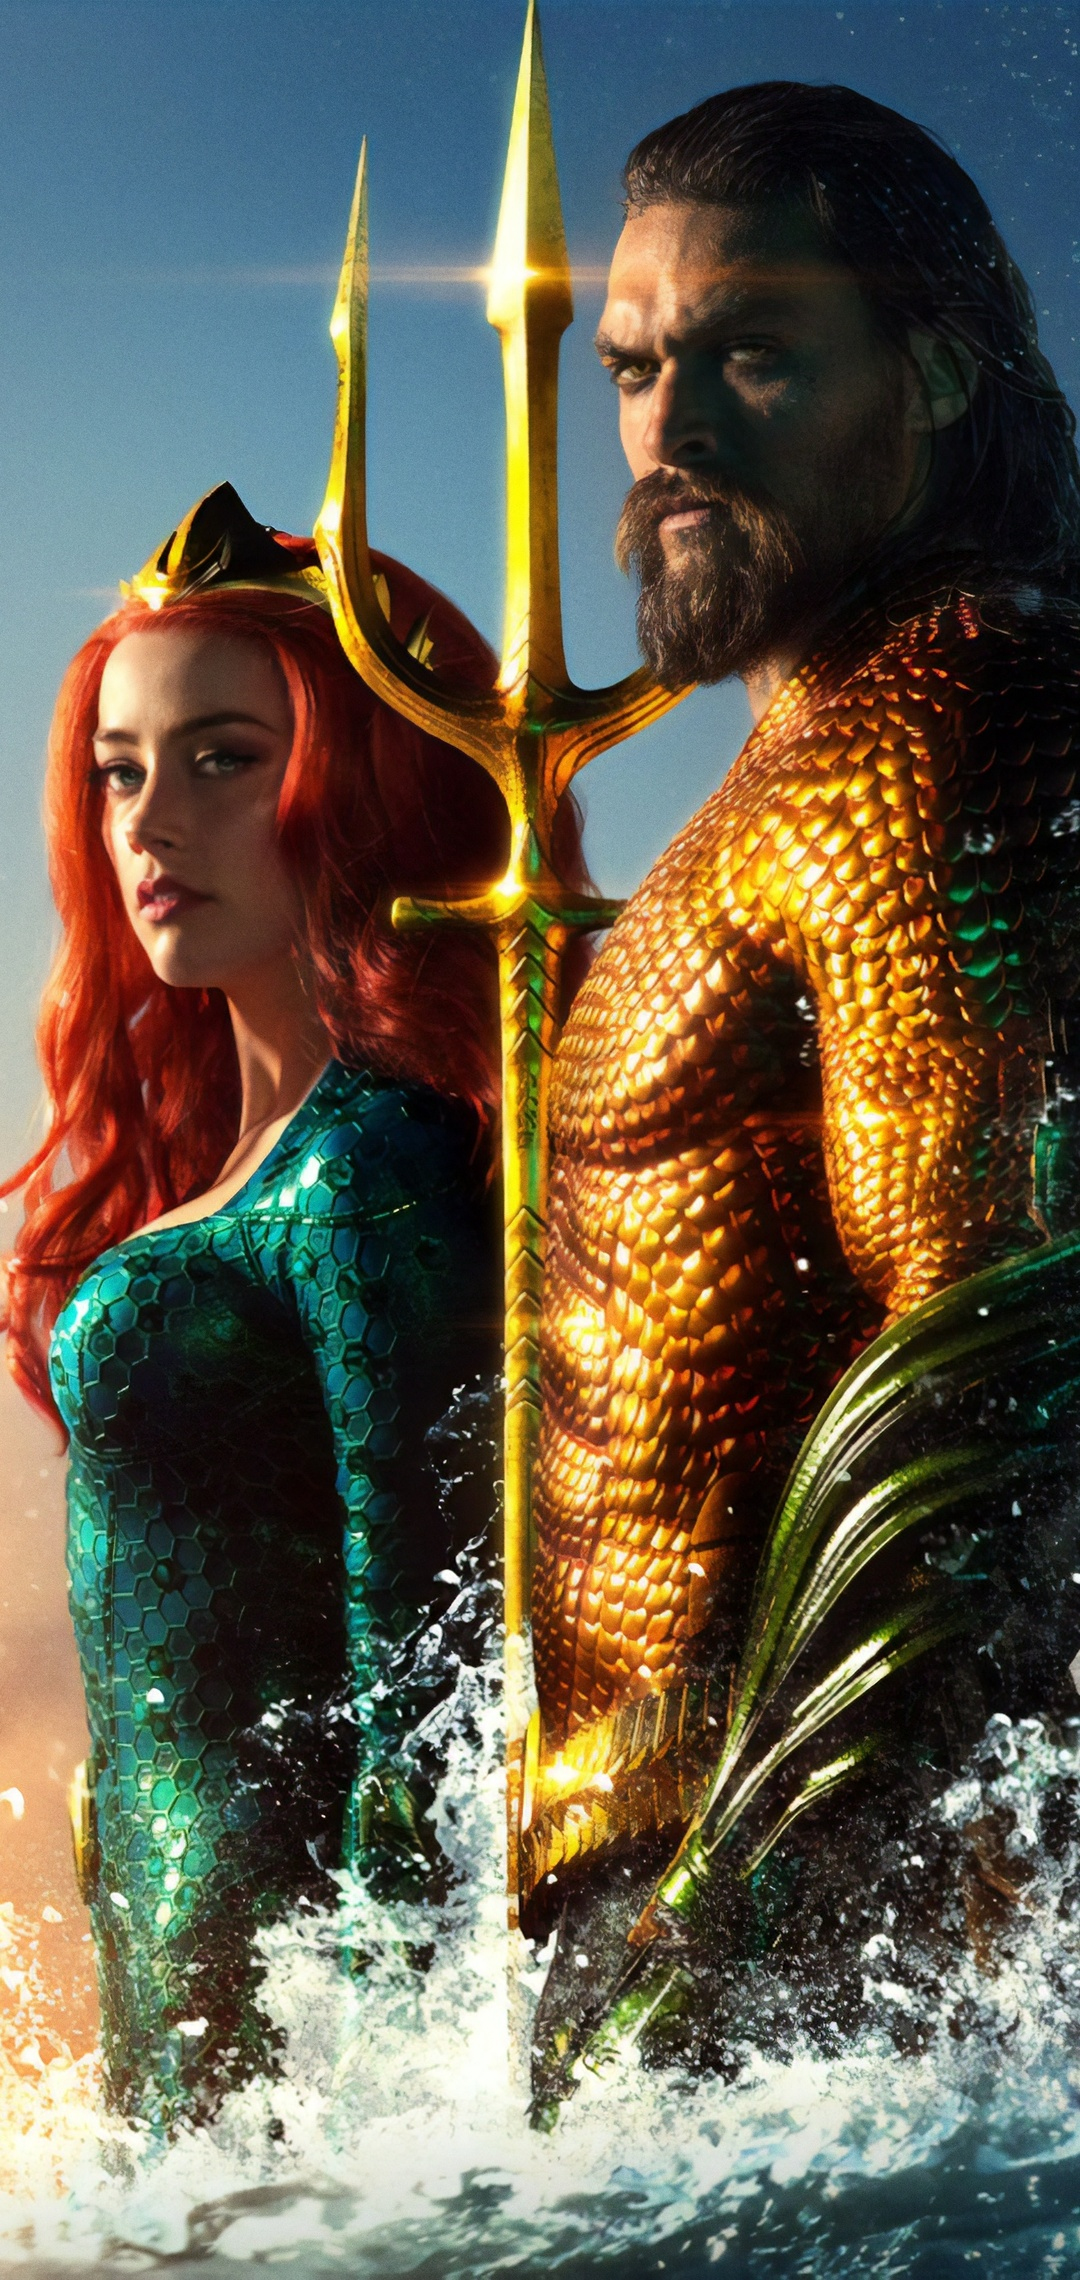 aquaman-2018-movie-5k-kv.jpg